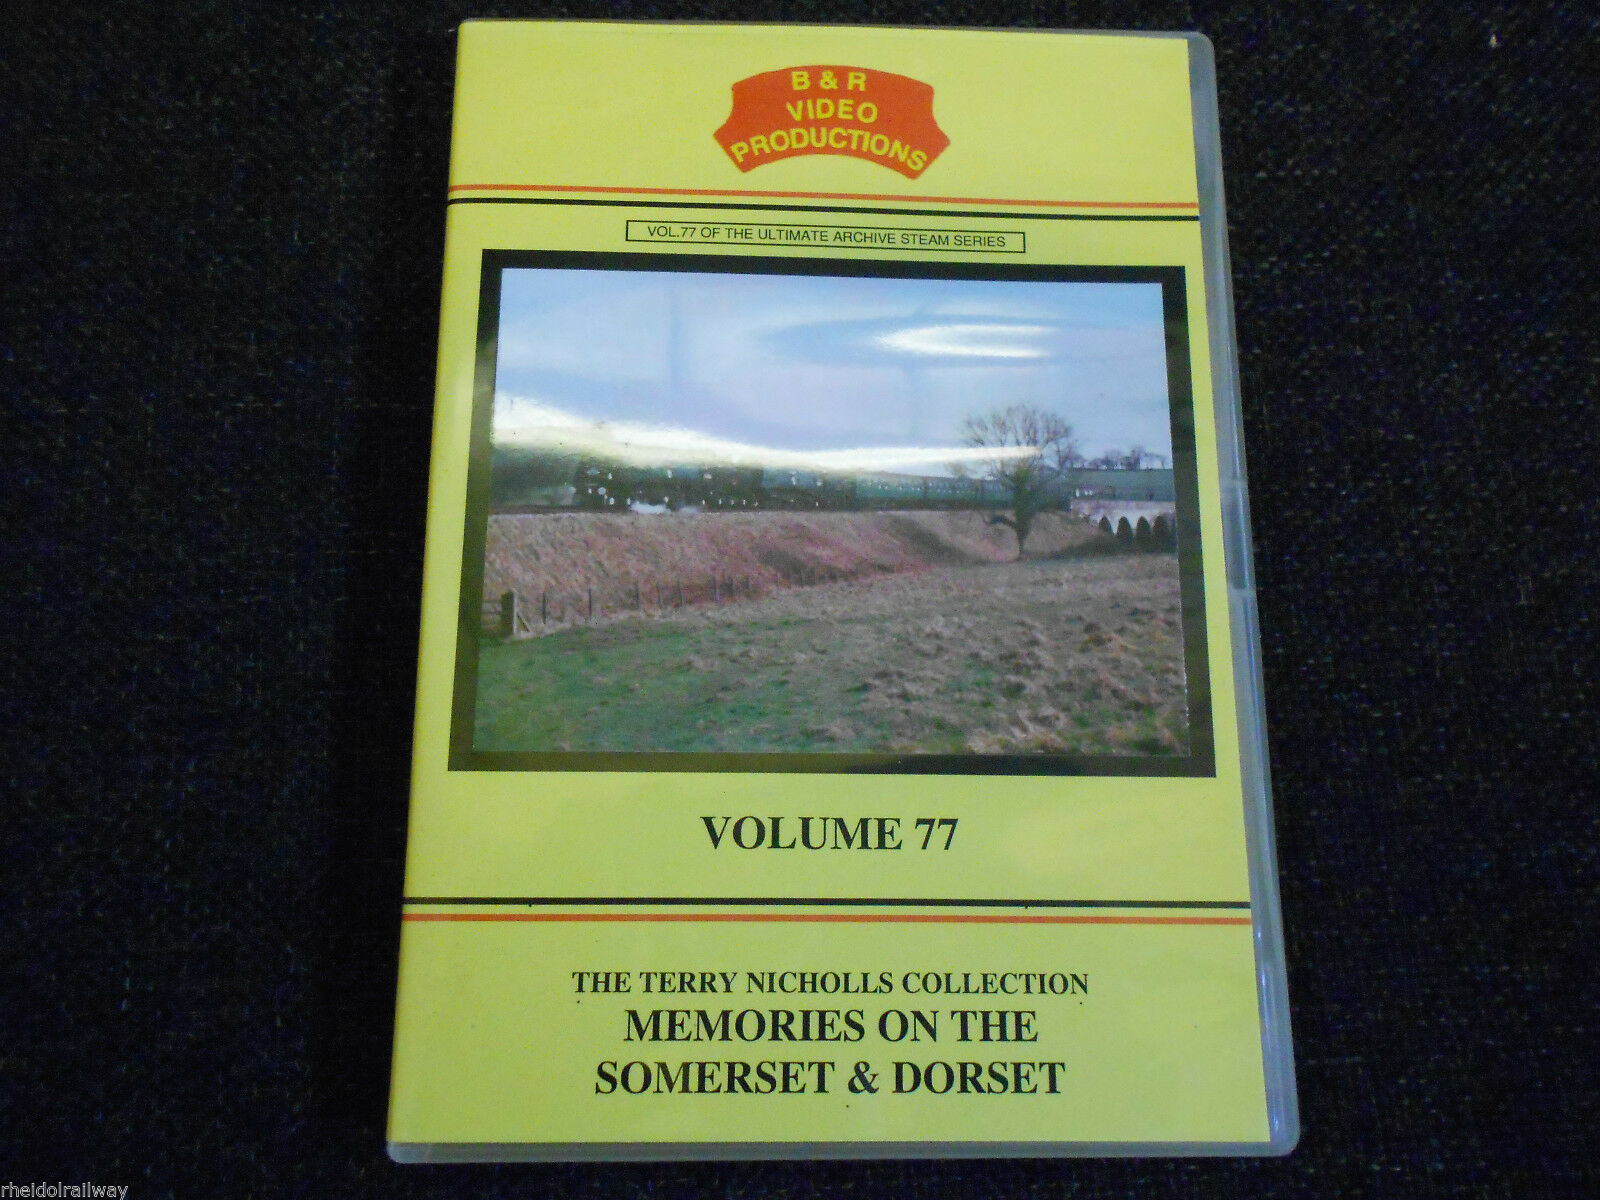 Bristol, Bath, Evercreech, Memories On The Somerset & Dorset, B&R Vol 77 DVD - The Vale of Rheidol Railway